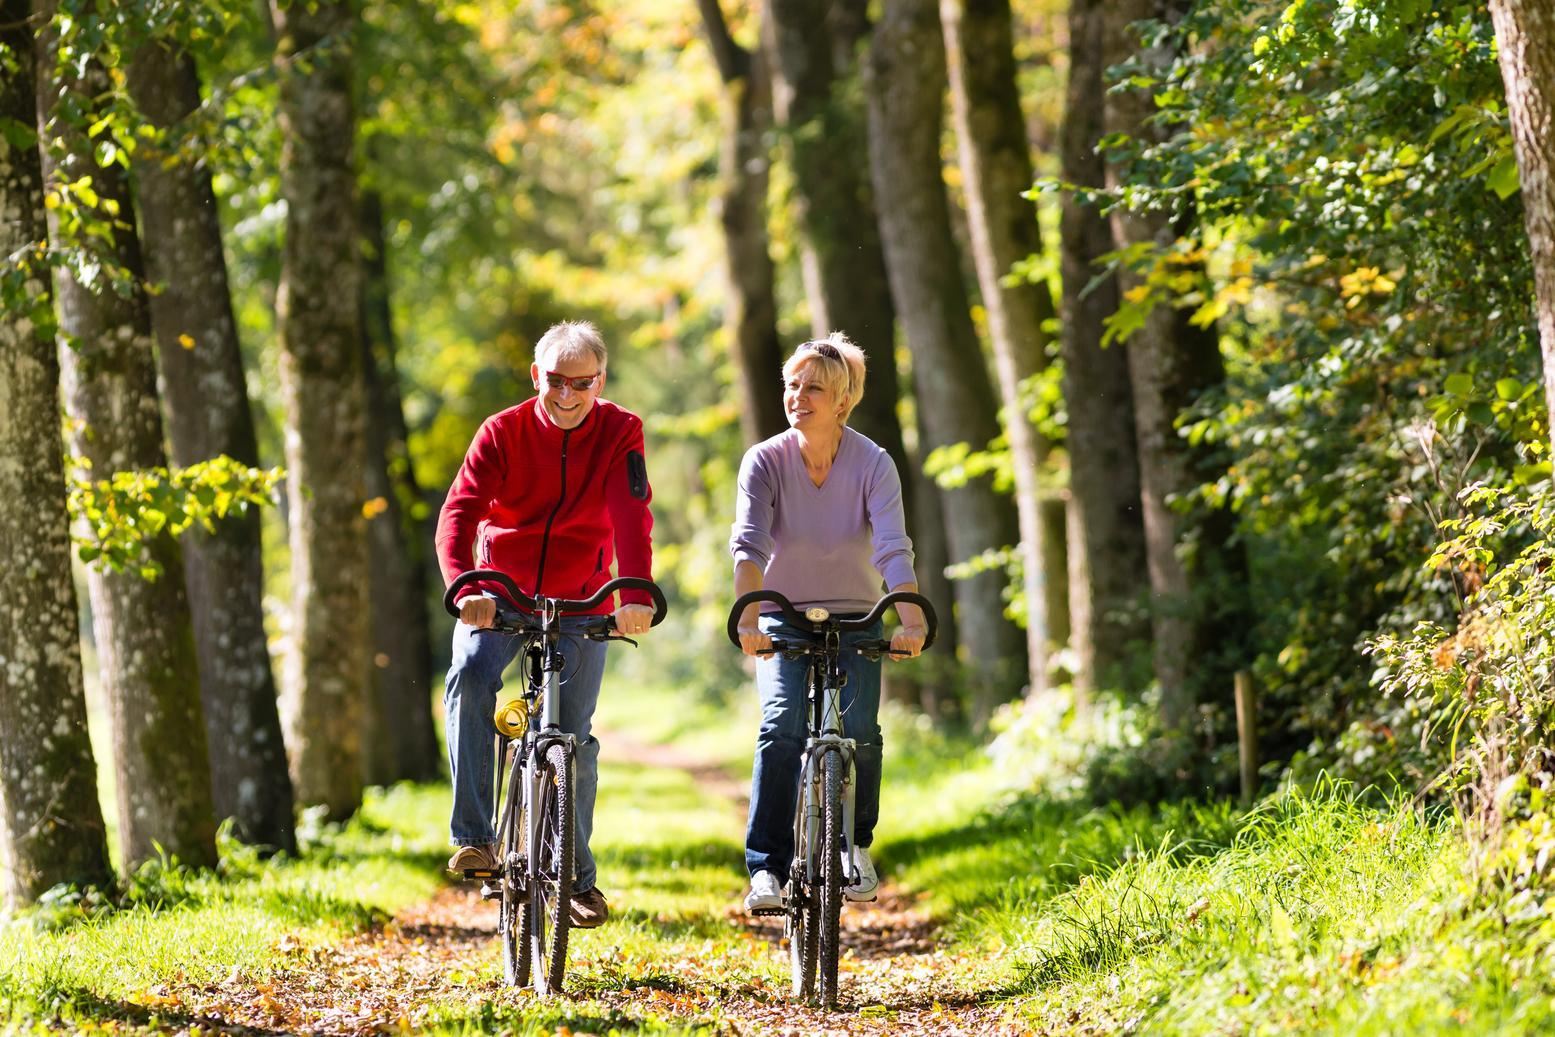 Couple riding bicycles on a forest path